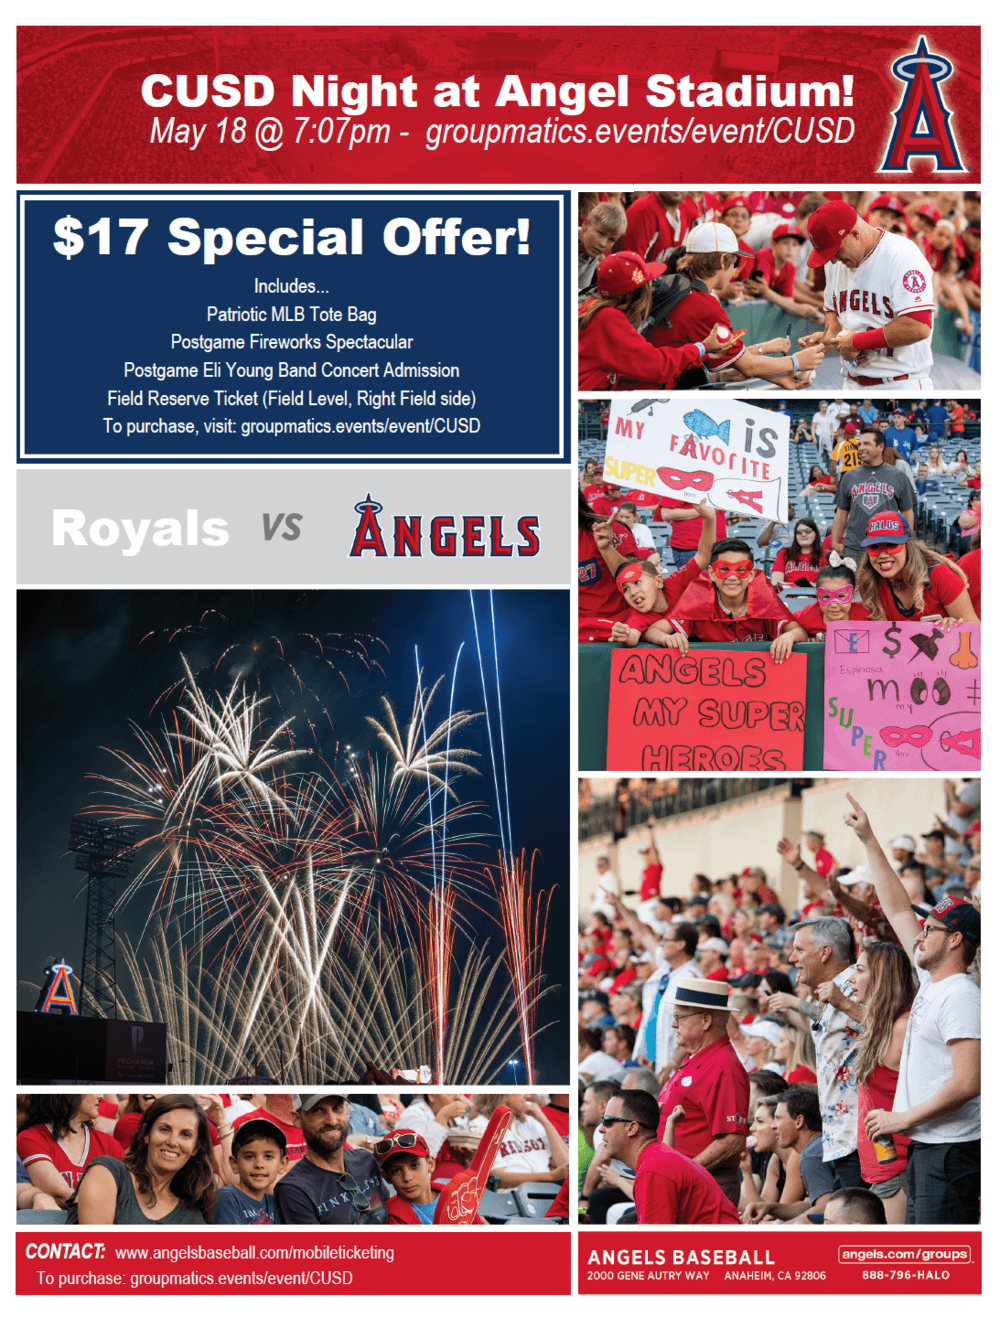 CUSD angels Night Flyer